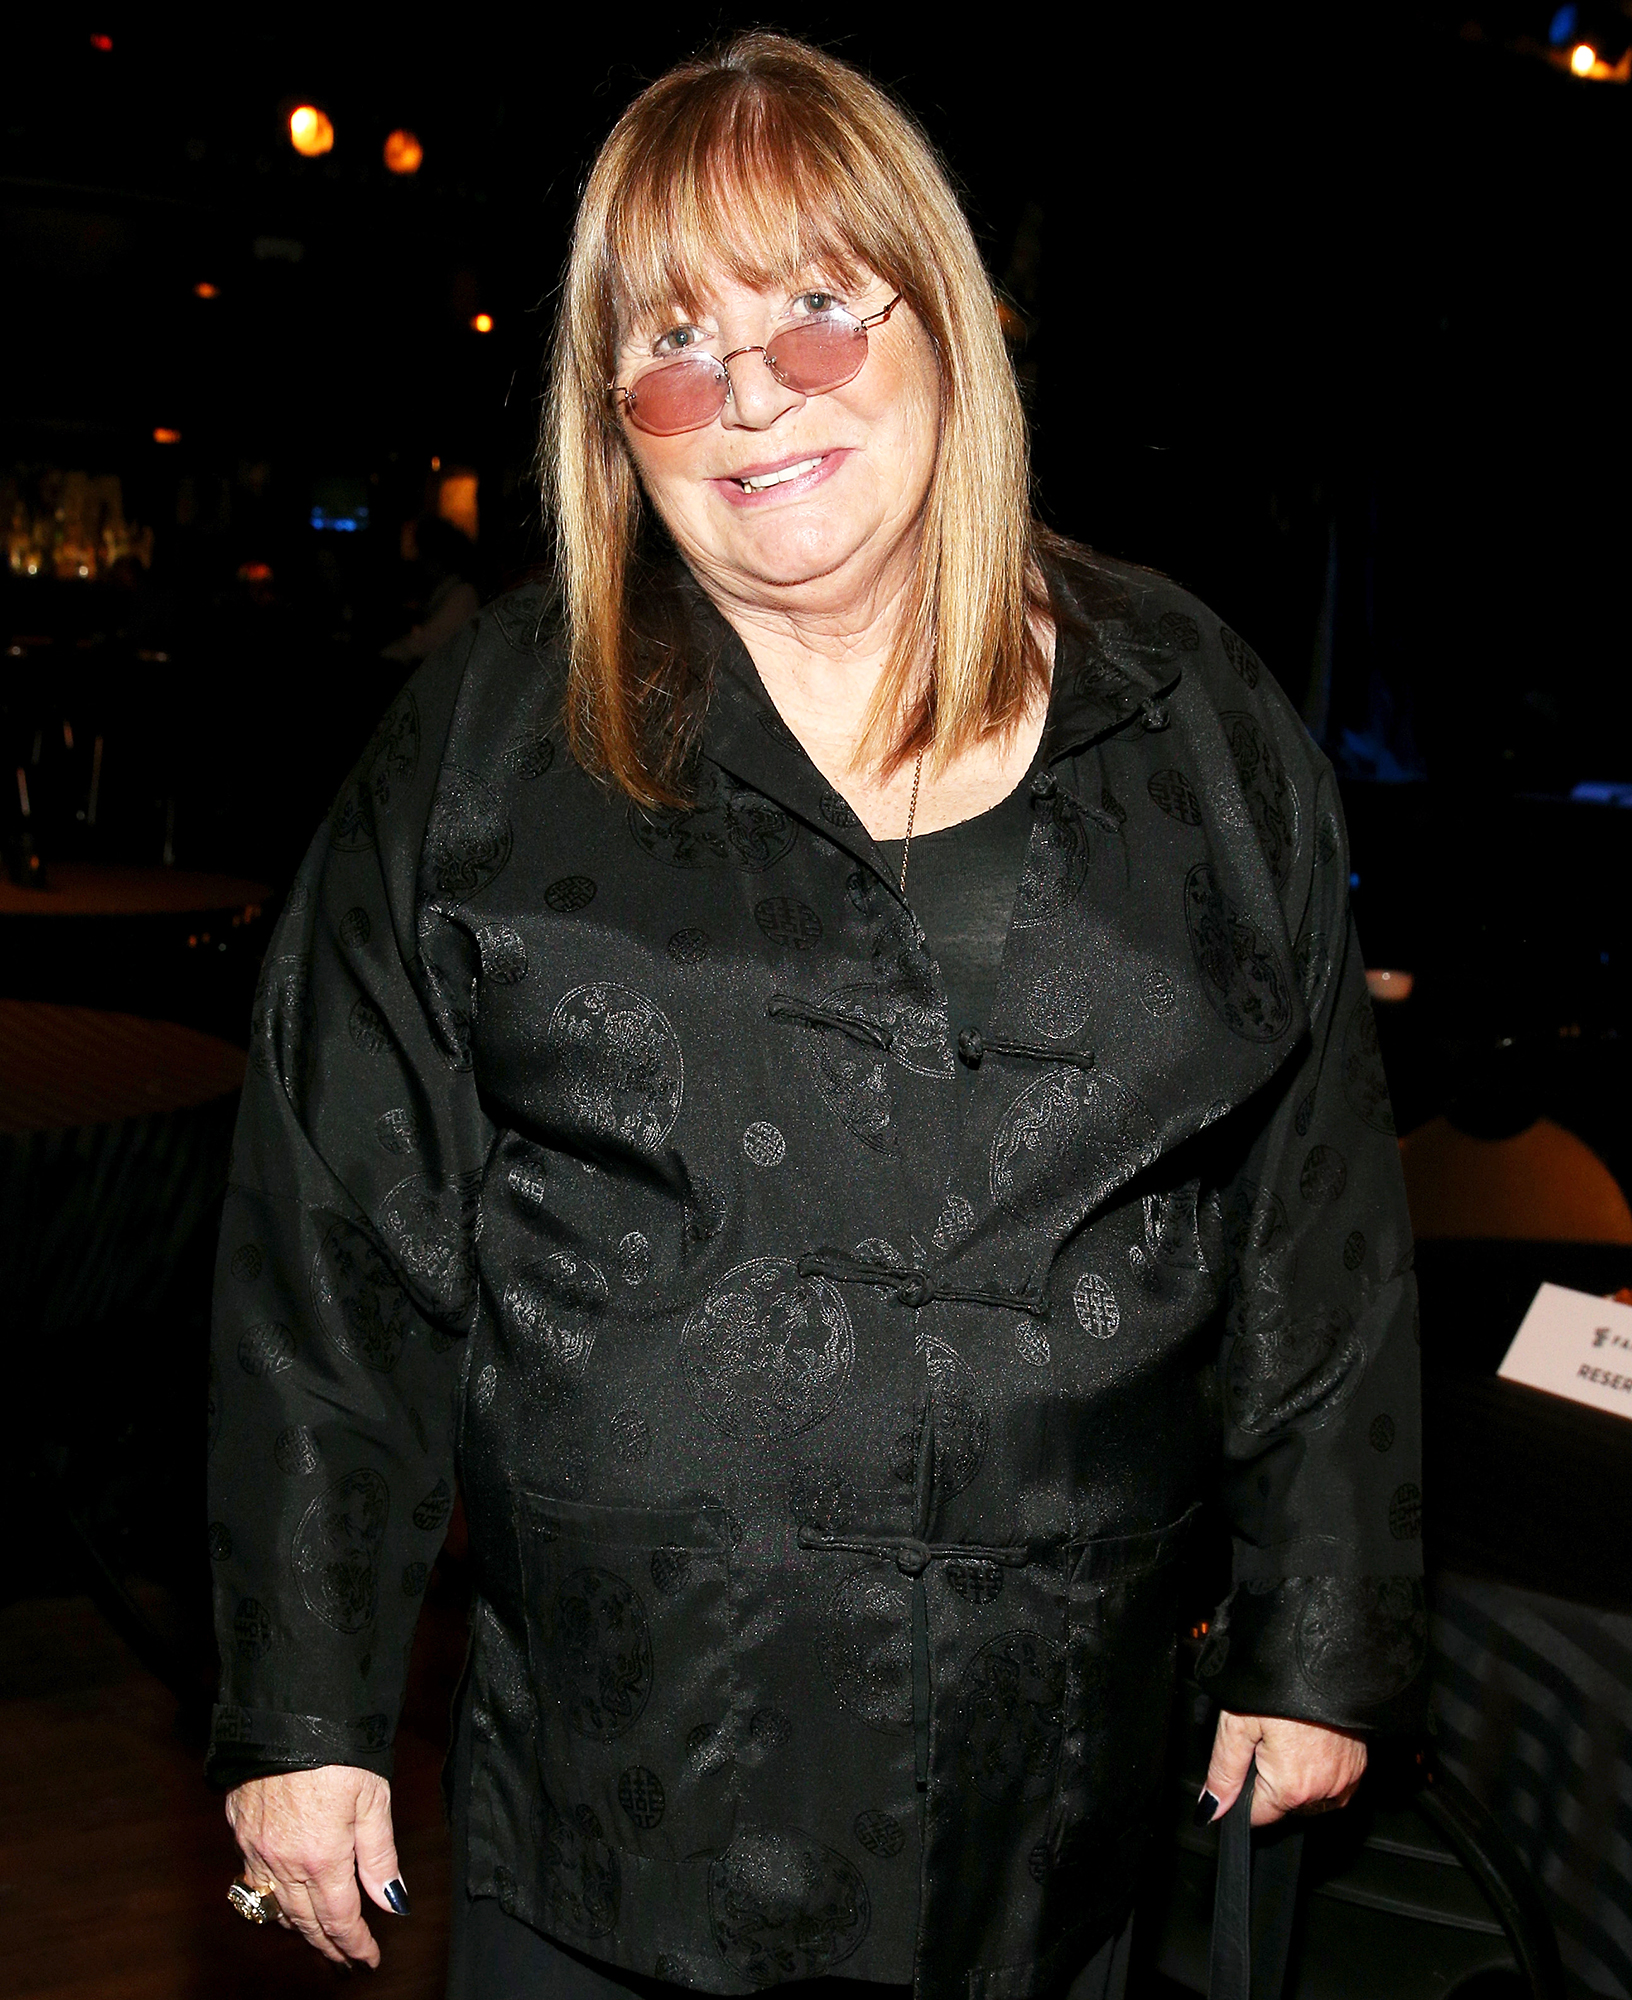 Penny Marshall Dead - Penny Marshall attends the celebration of black cinema hosted by Broadcast Film Critics Association at House of Blues Sunset Strip on January 7, 2014 in West Hollywood, California.